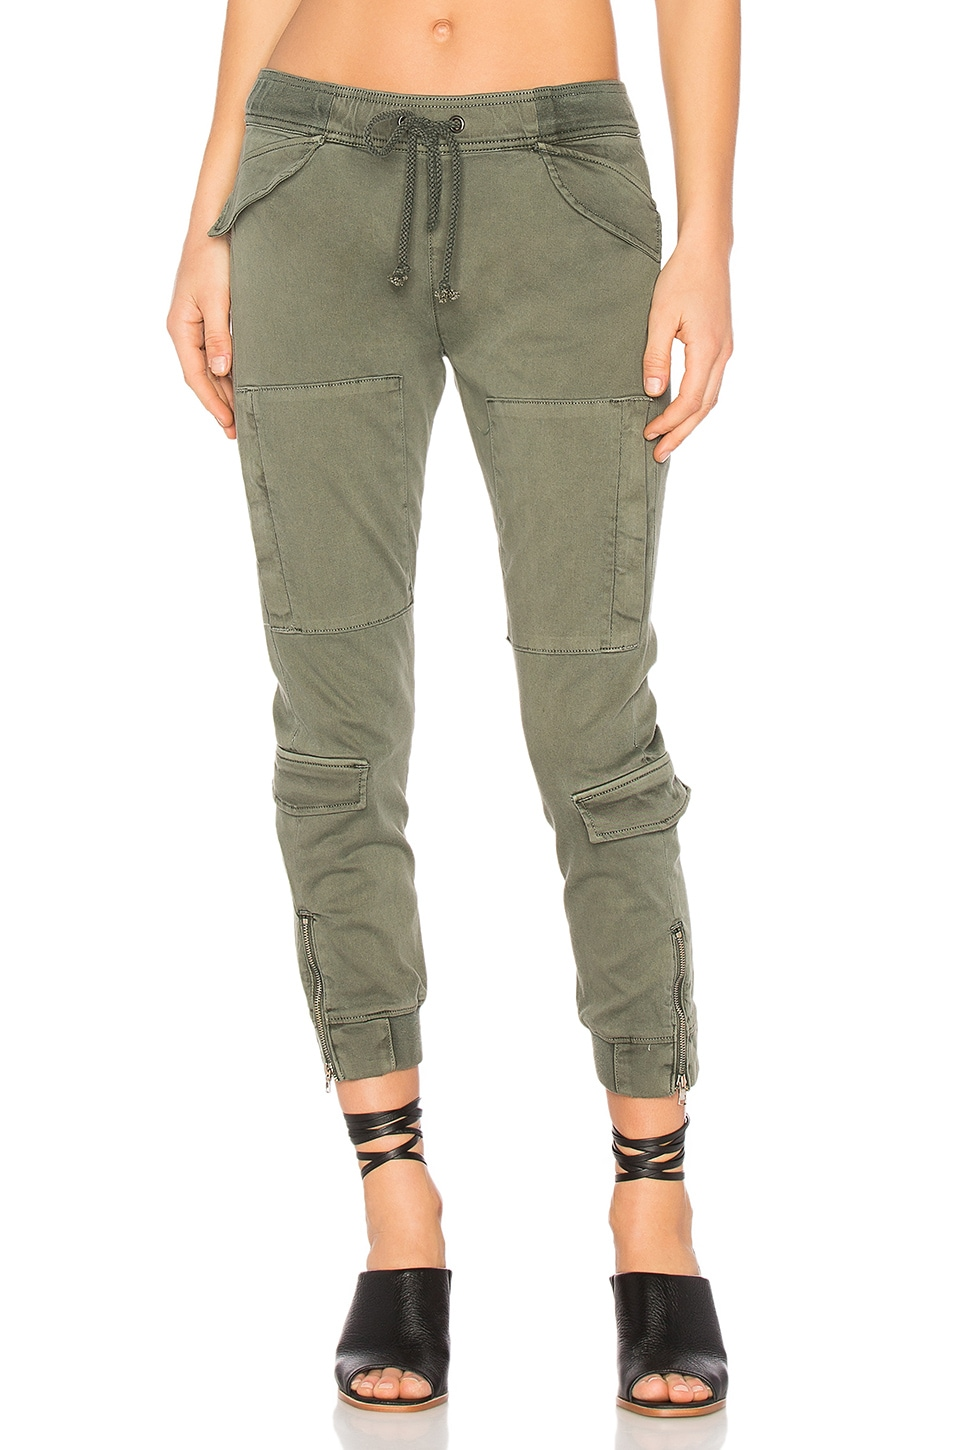 Runaway Flight Pant by Hudson Jeans